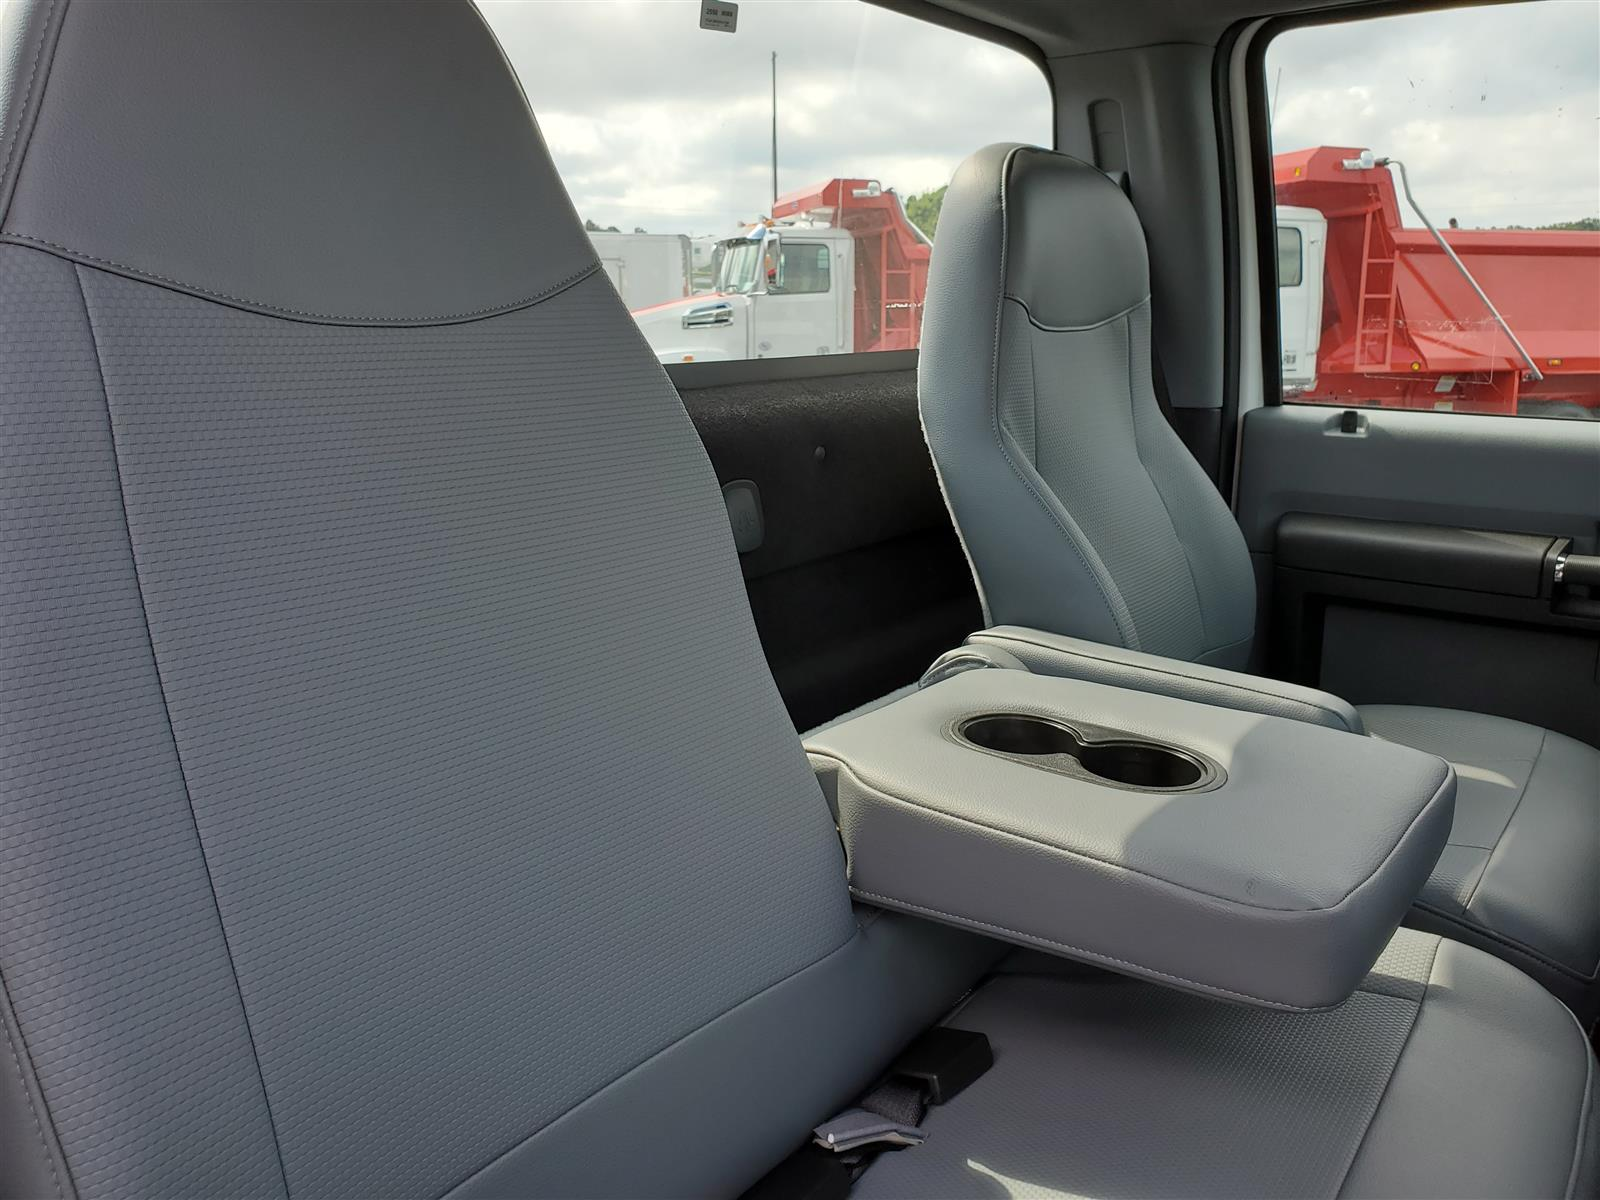 2021 Ford F-750 Regular Cab DRW 4x2, Cab Chassis #MDF02562 - photo 10